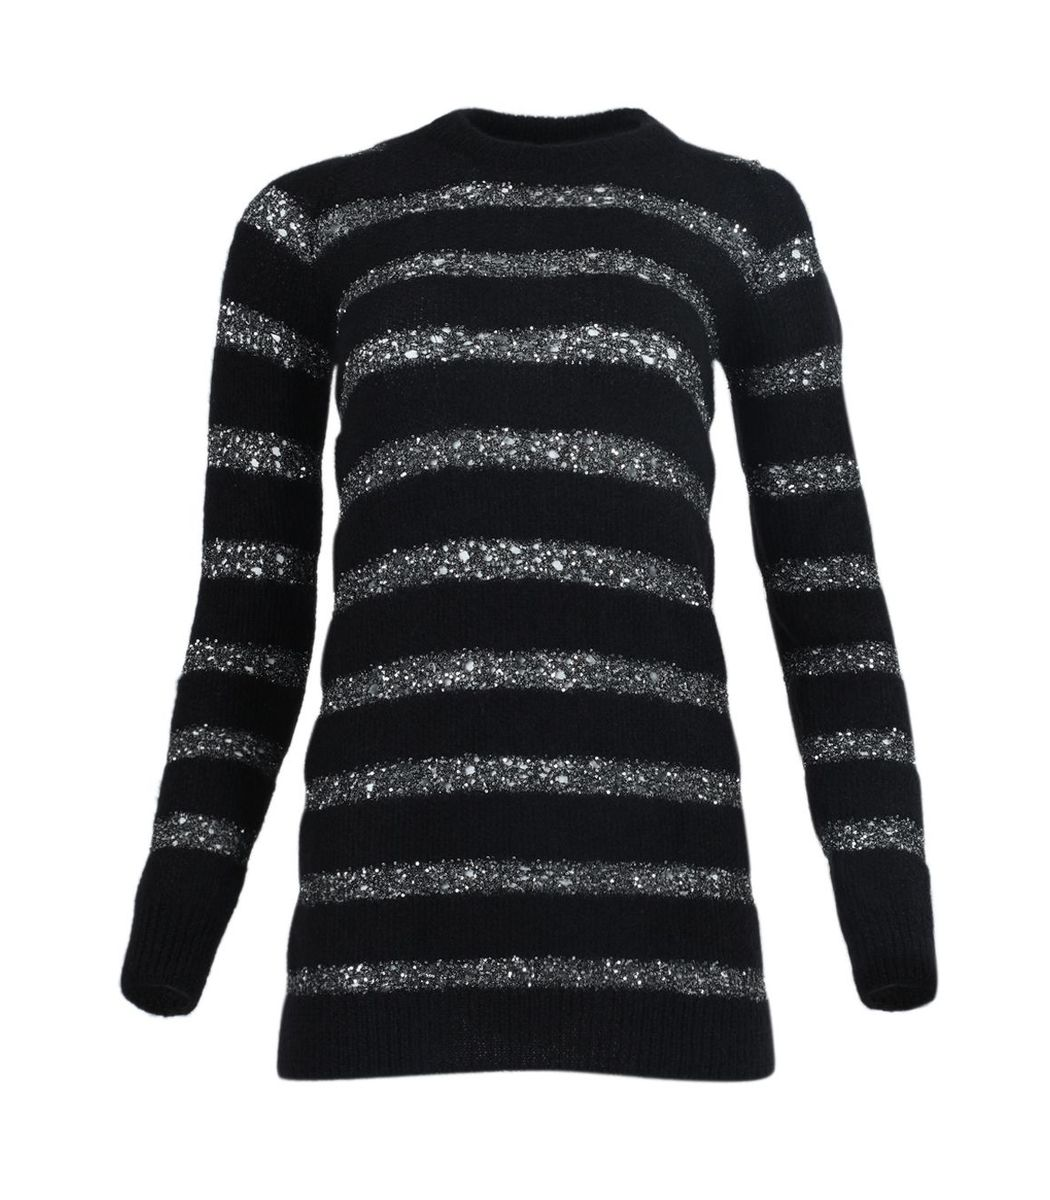 SAINT LAURENT Black And Silver Sequin Striped Mini Dress